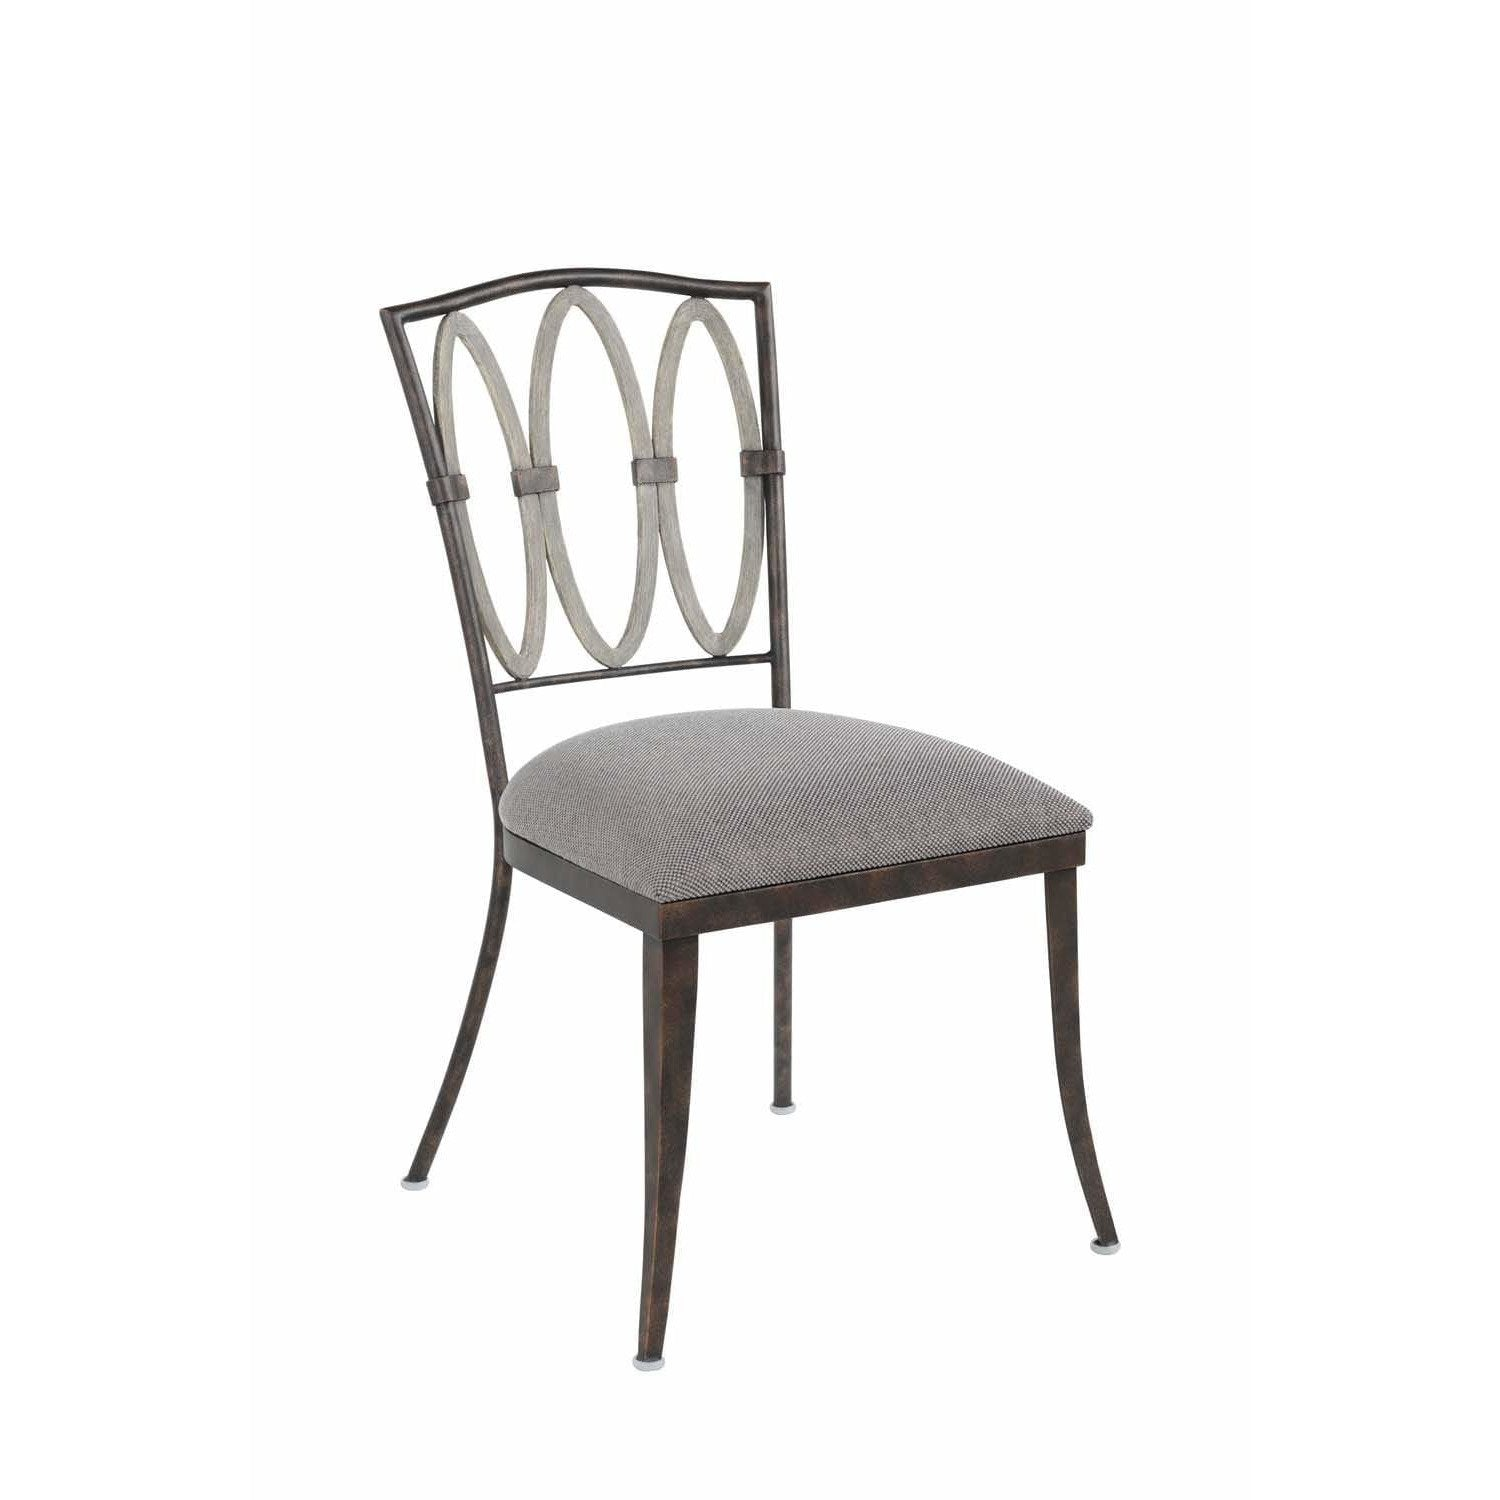 Kalco Lighting Chairs Florence Gold Belmont Dining Chair By Kalco Lighting 800401